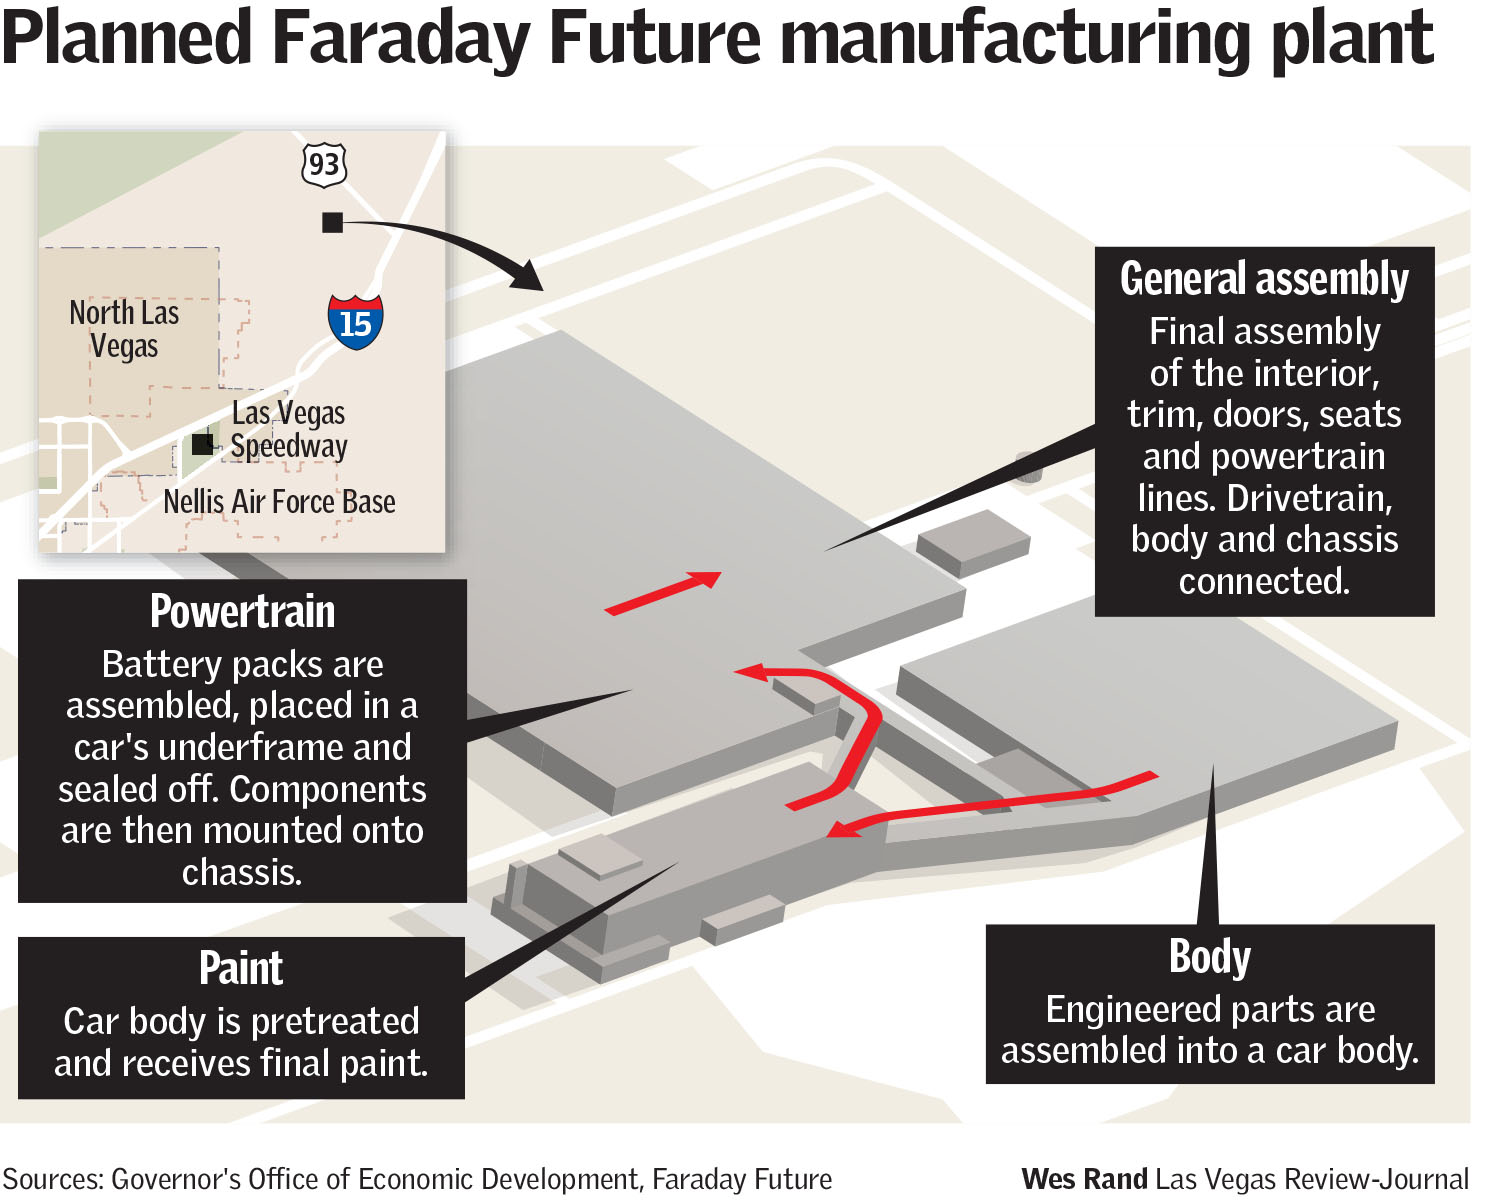 Planned Faraday Future plant